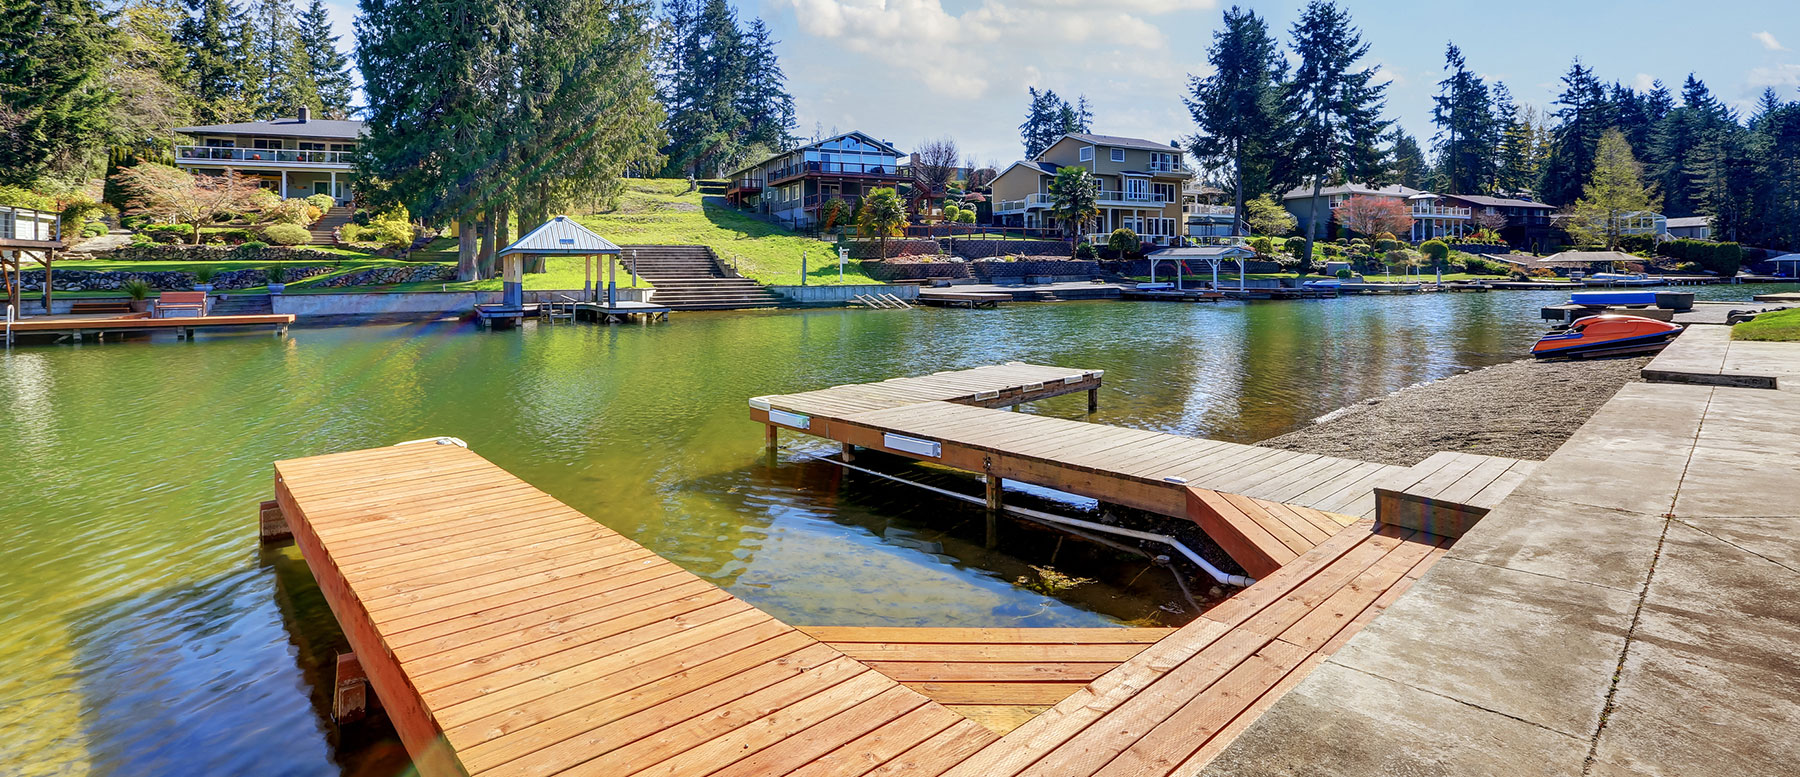 Waterfront Property and Home Inspection